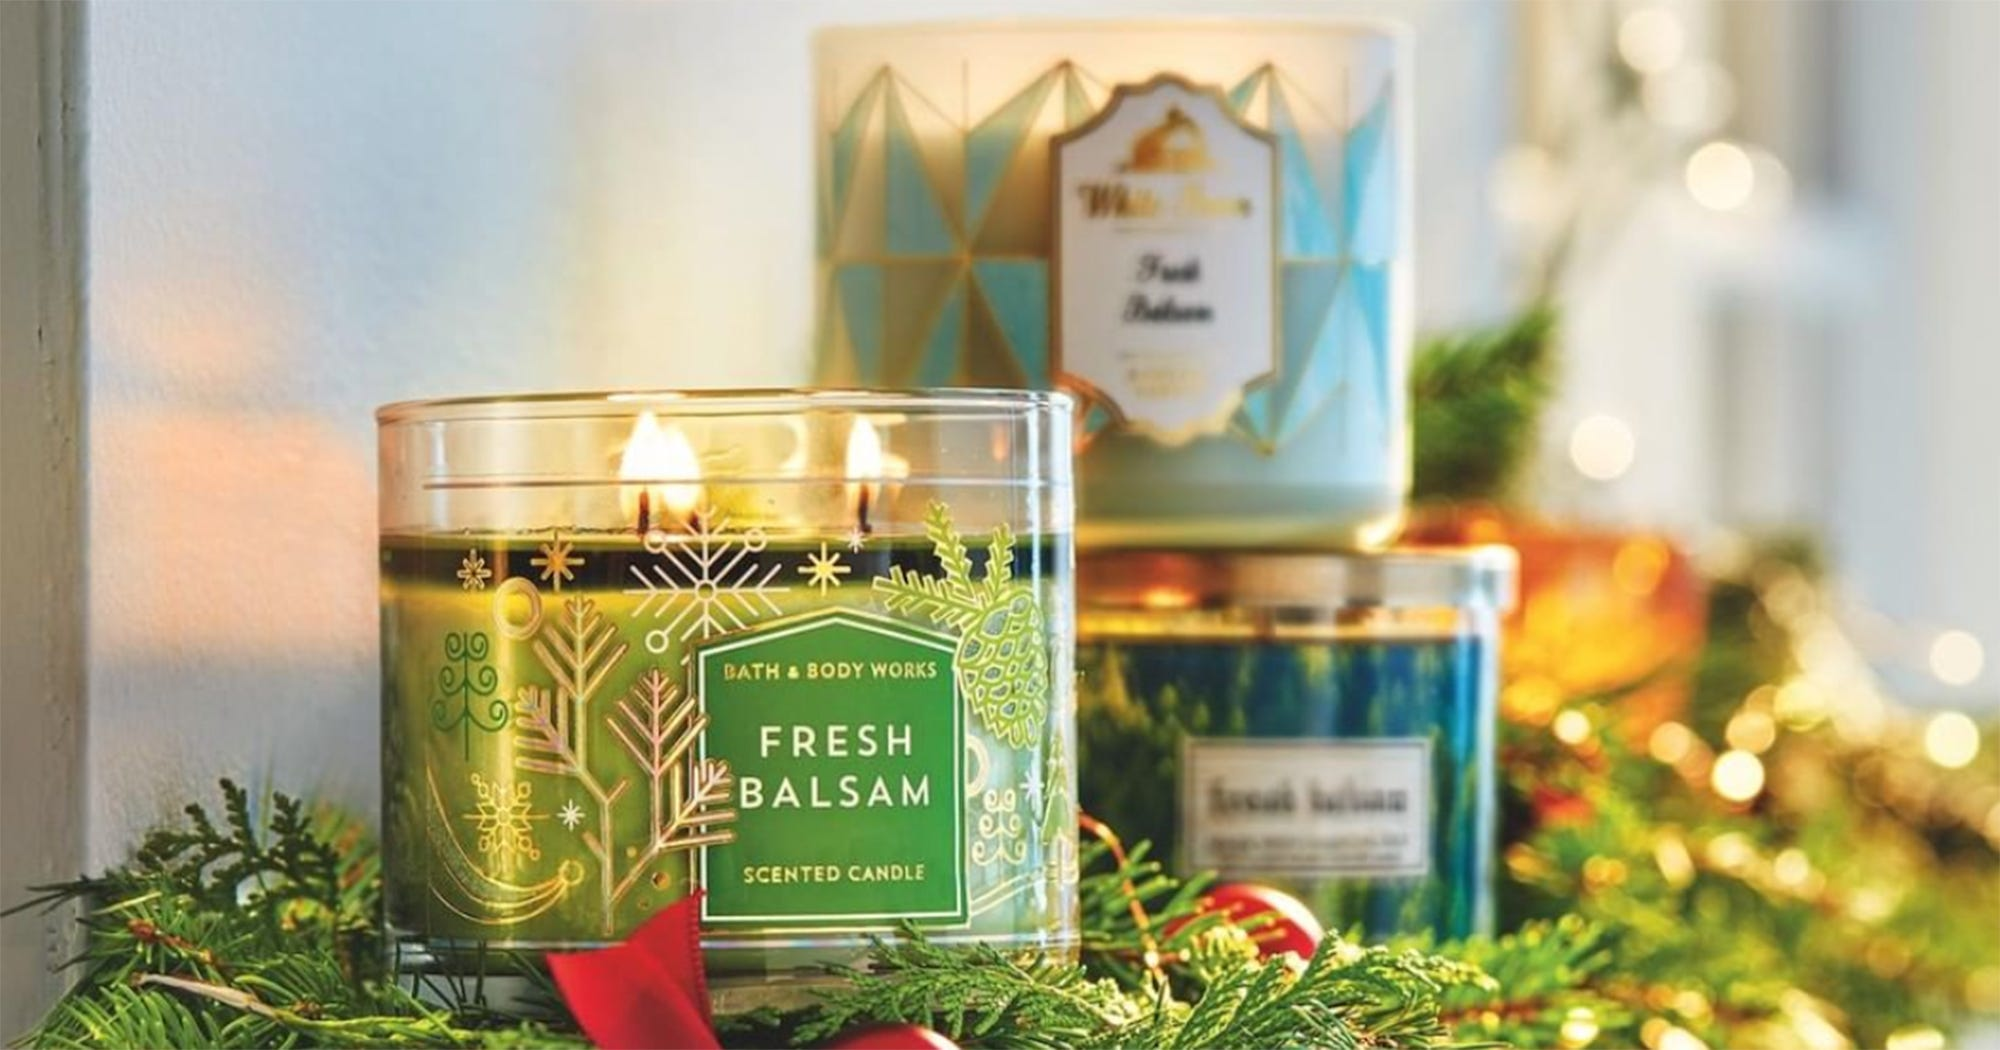 bath and body works candle day 2018 sale has 8 candles. Black Bedroom Furniture Sets. Home Design Ideas